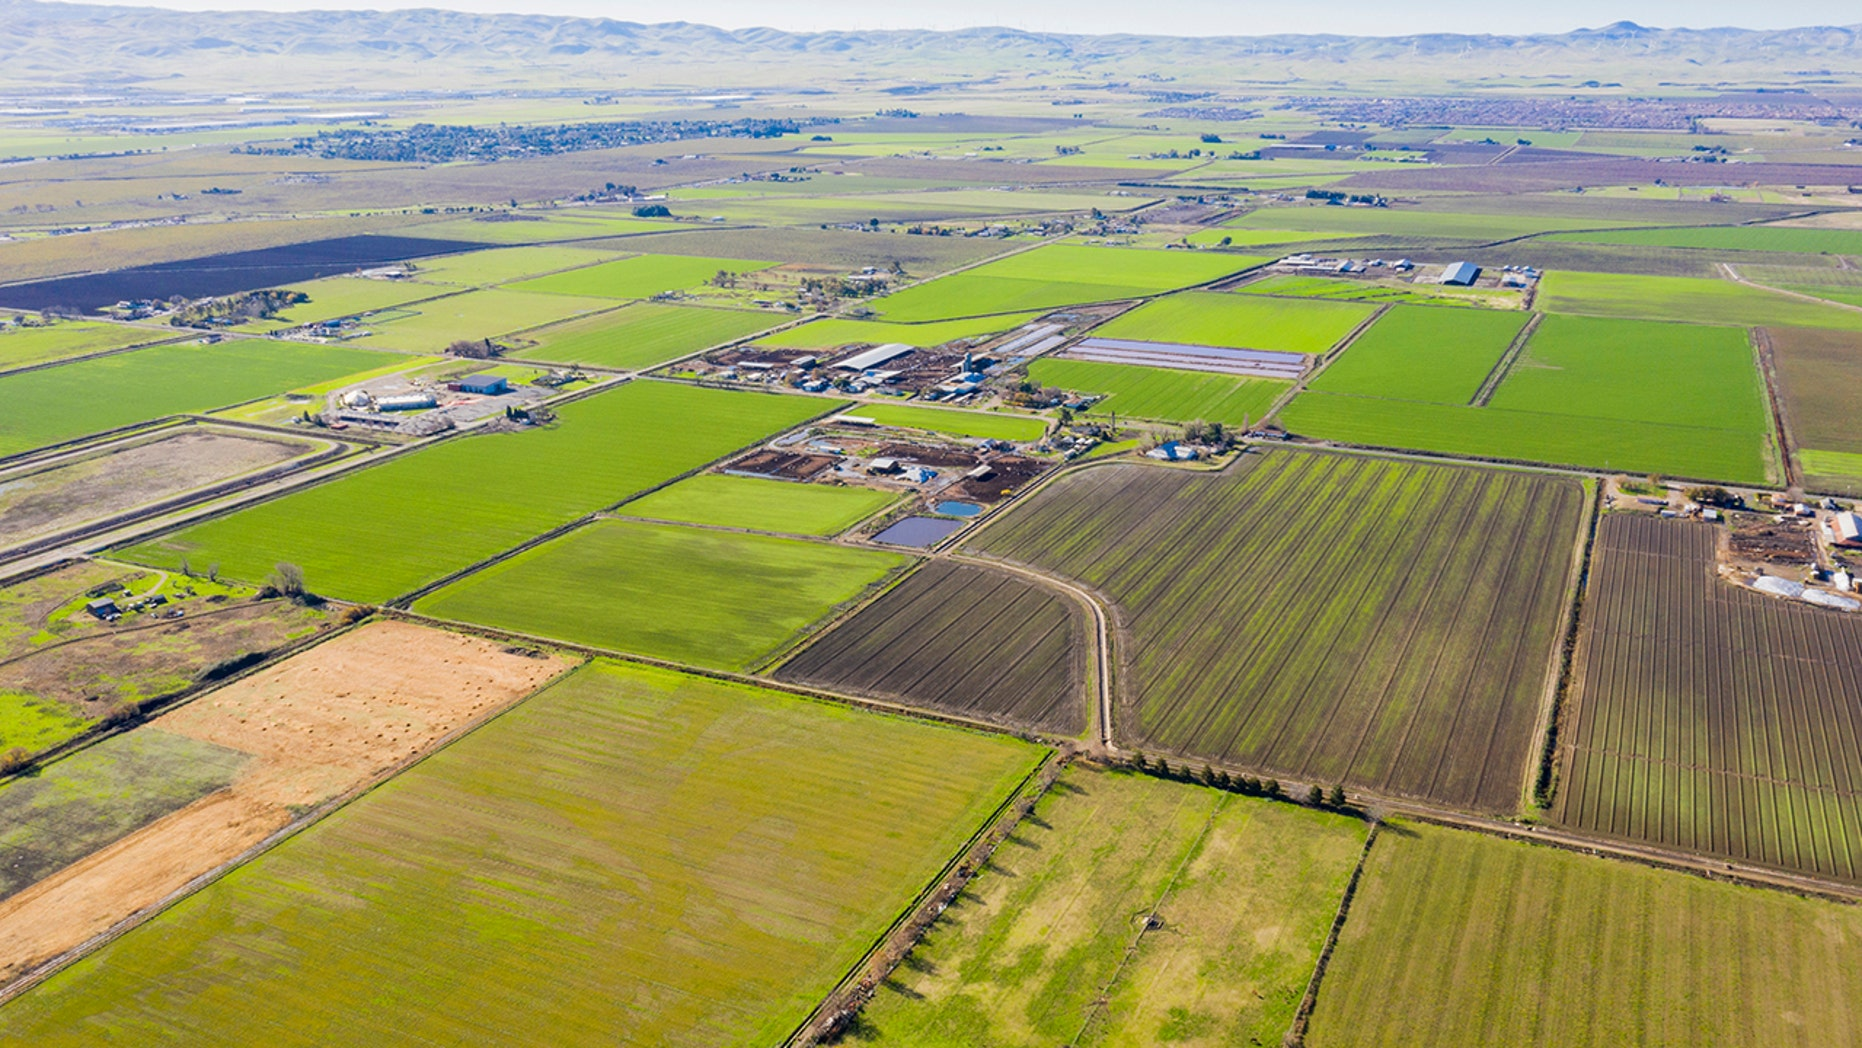 An aerial view of farmland in California's central valley. (iStock)